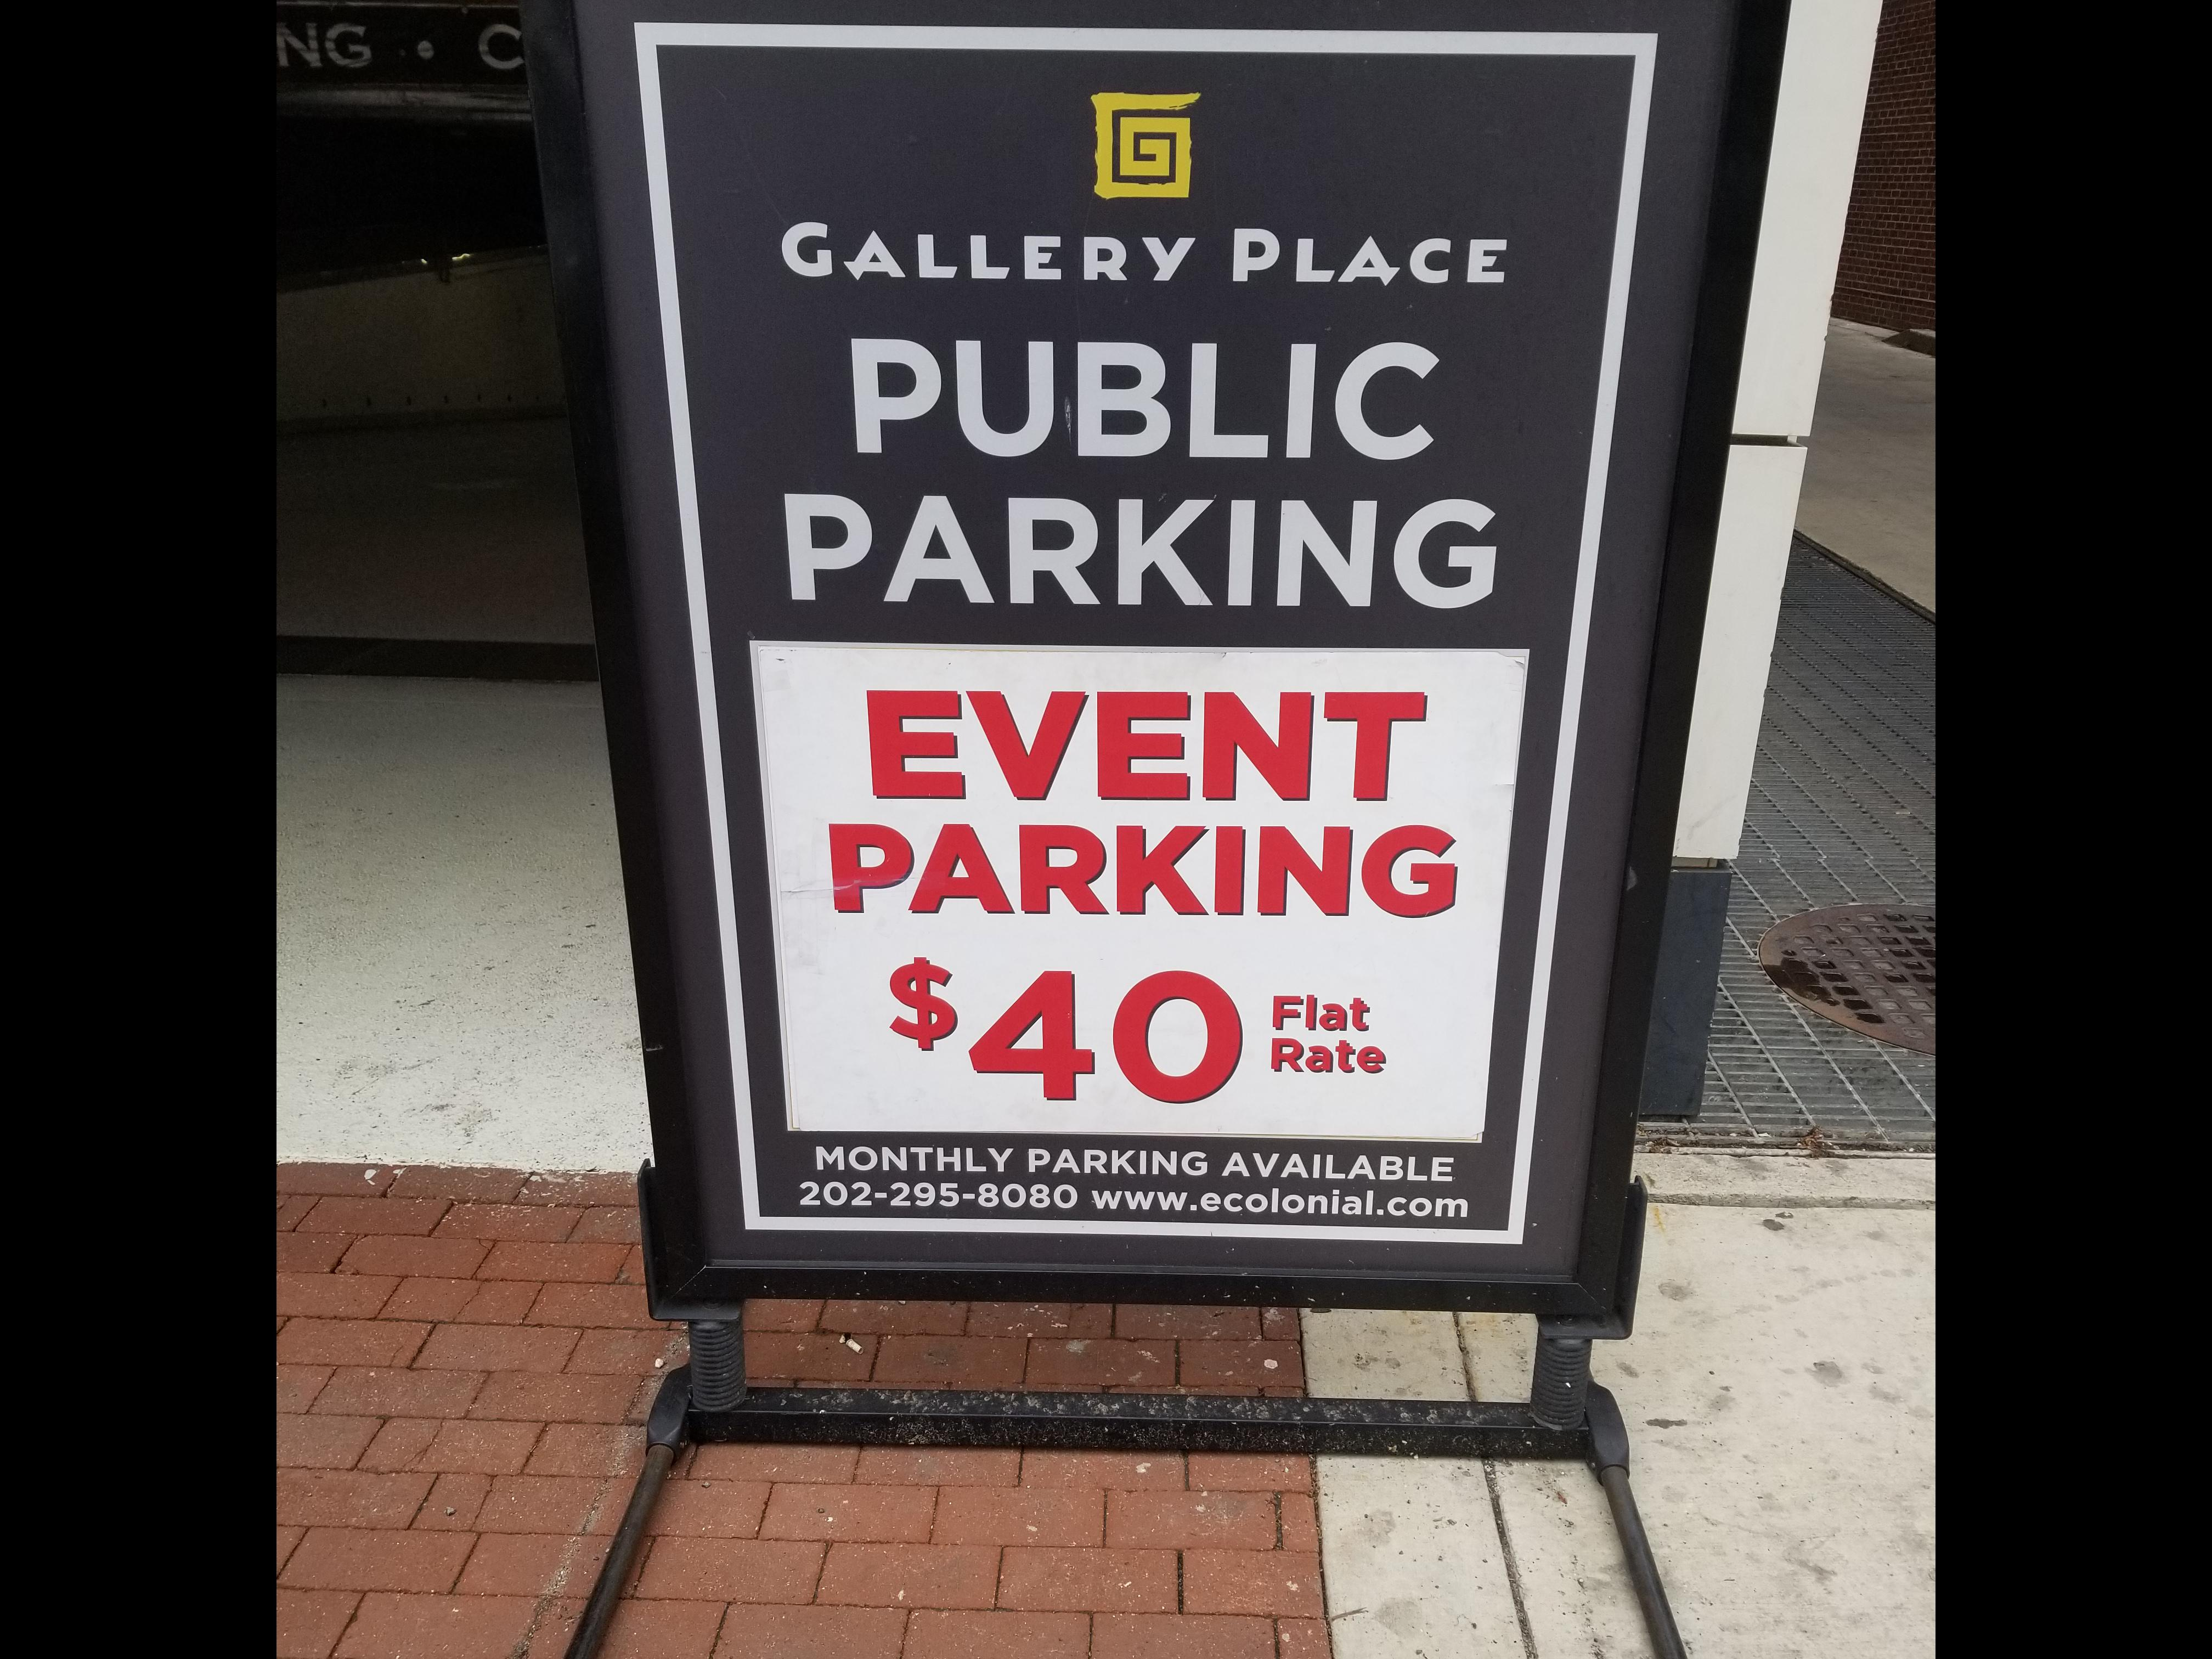 Lot 602 - Gallery Place Parking Parking